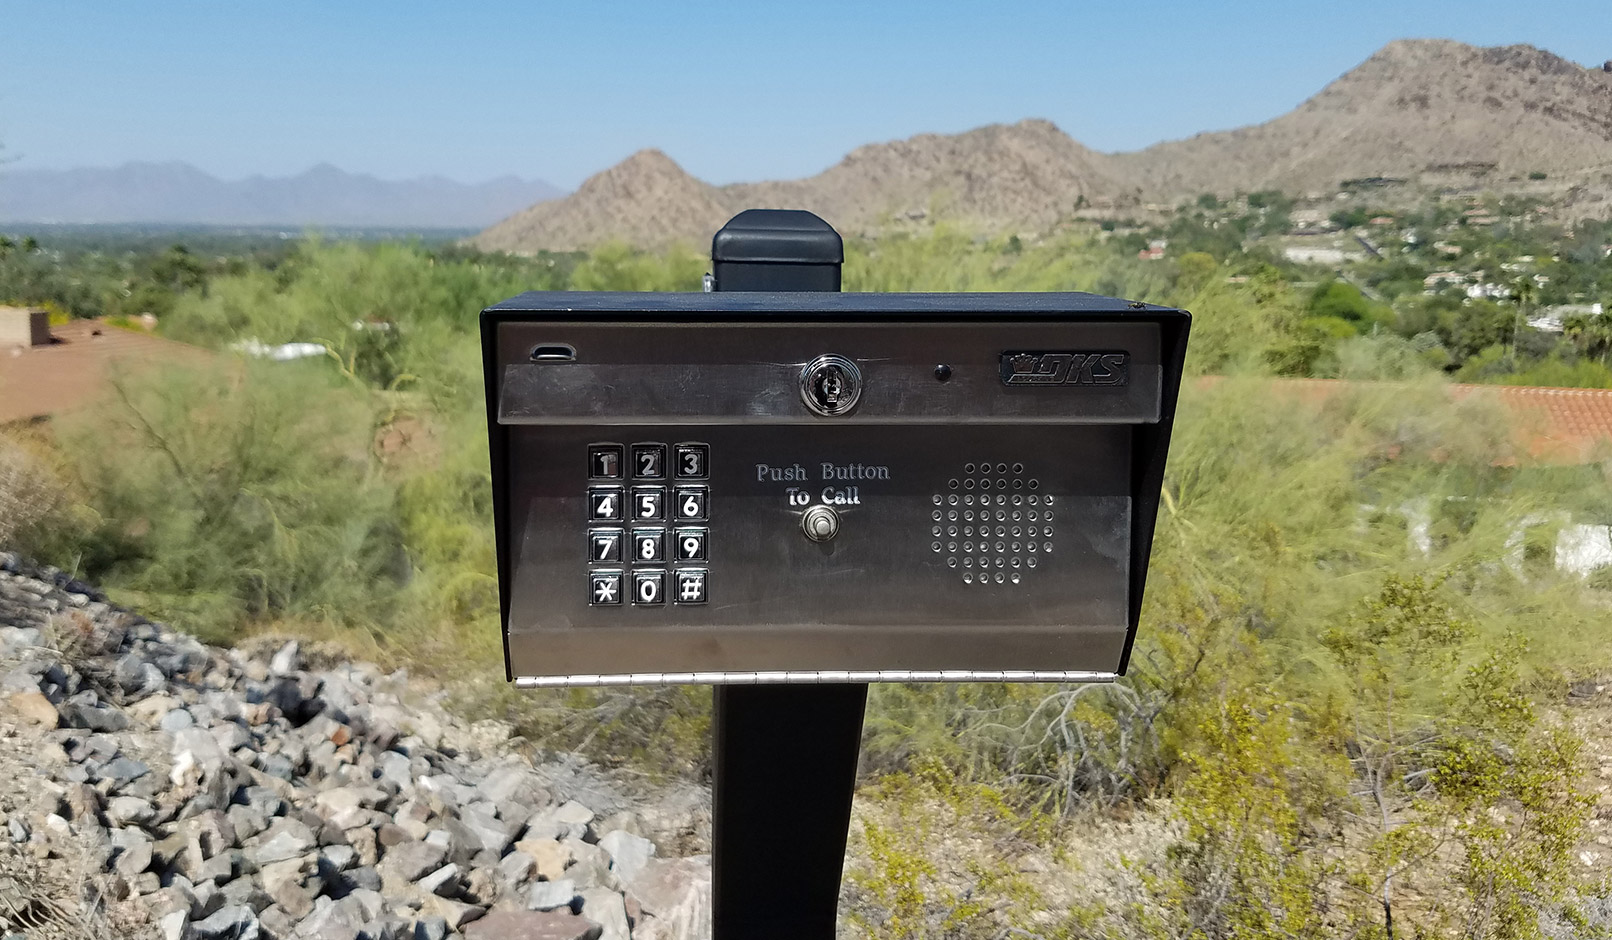 Automatic Gate Controls Arizona